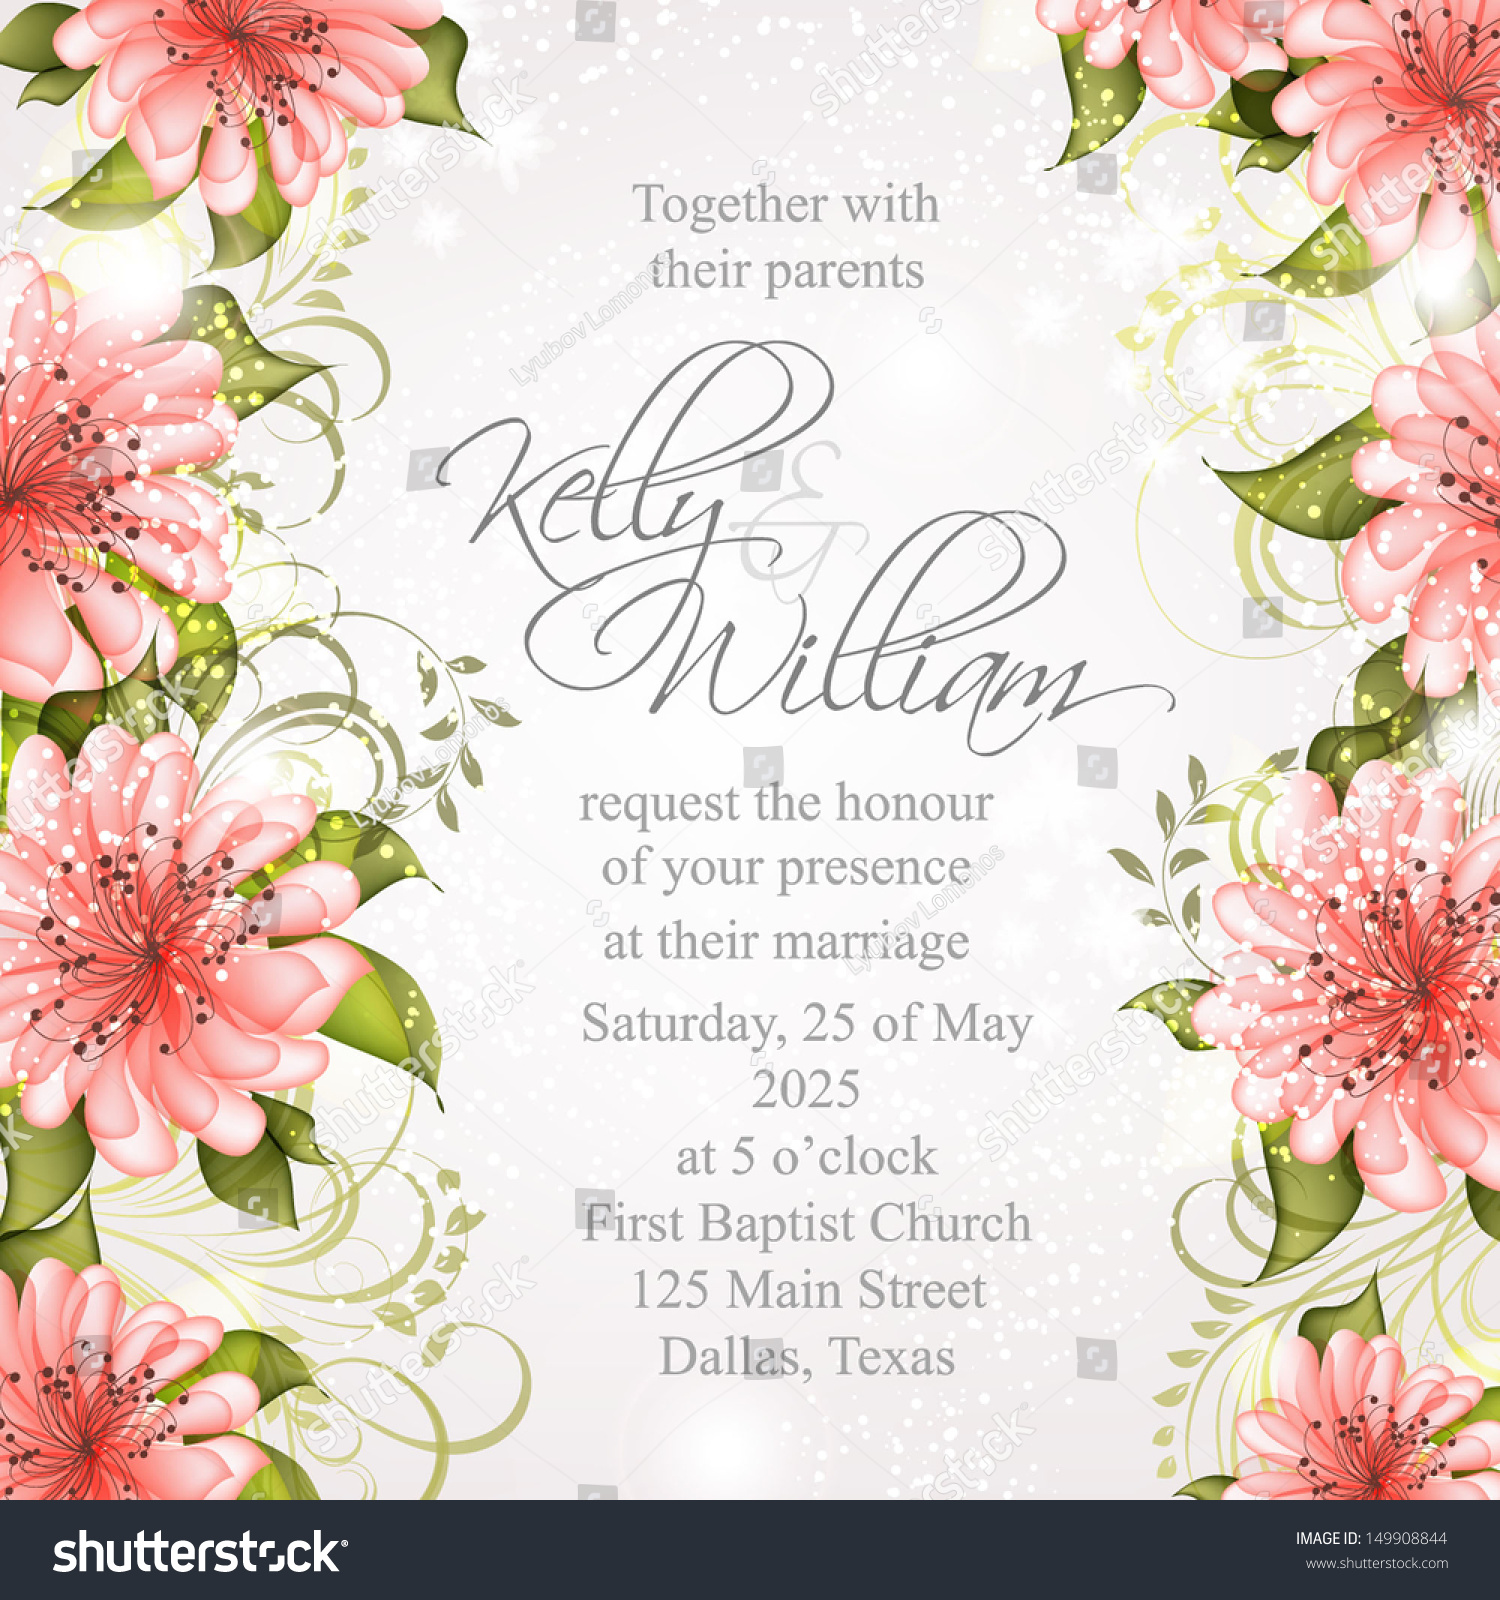 wedding invitation or card with abstract floral background bridal shower invitation card